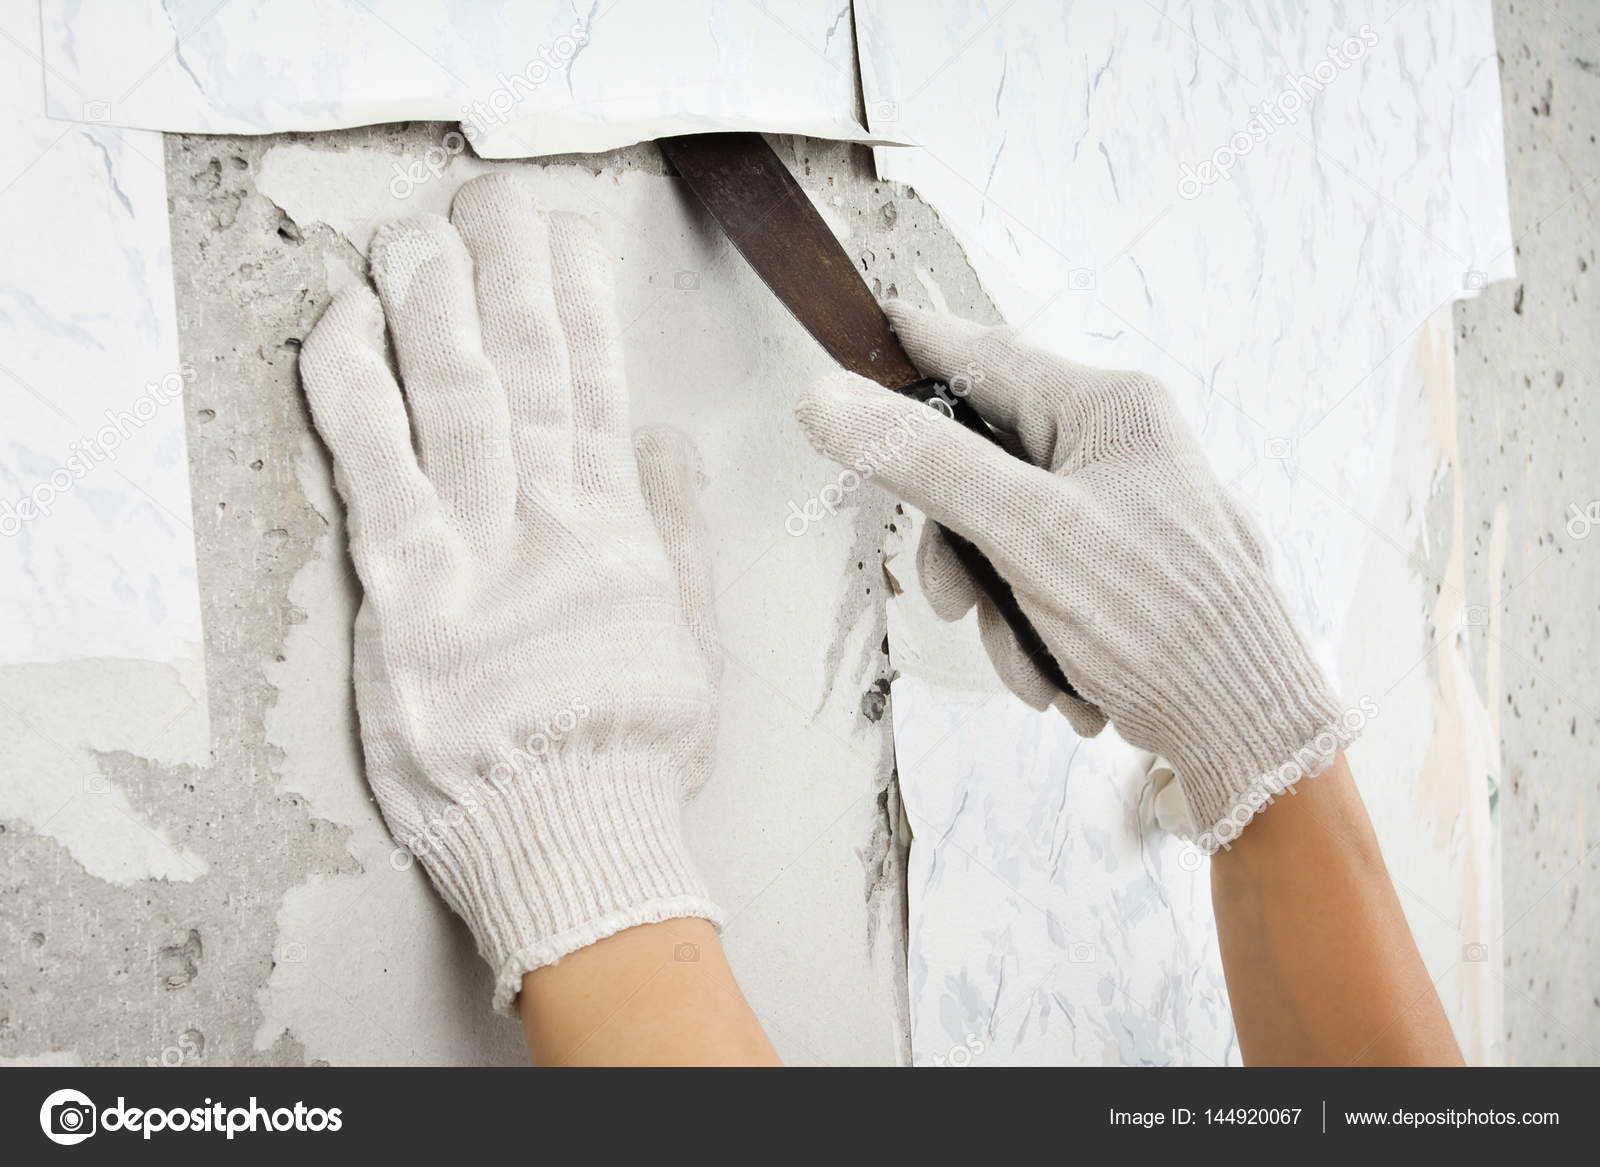 Hands In Gloves Removing Old Wallpaper With Spatula Stock Photo